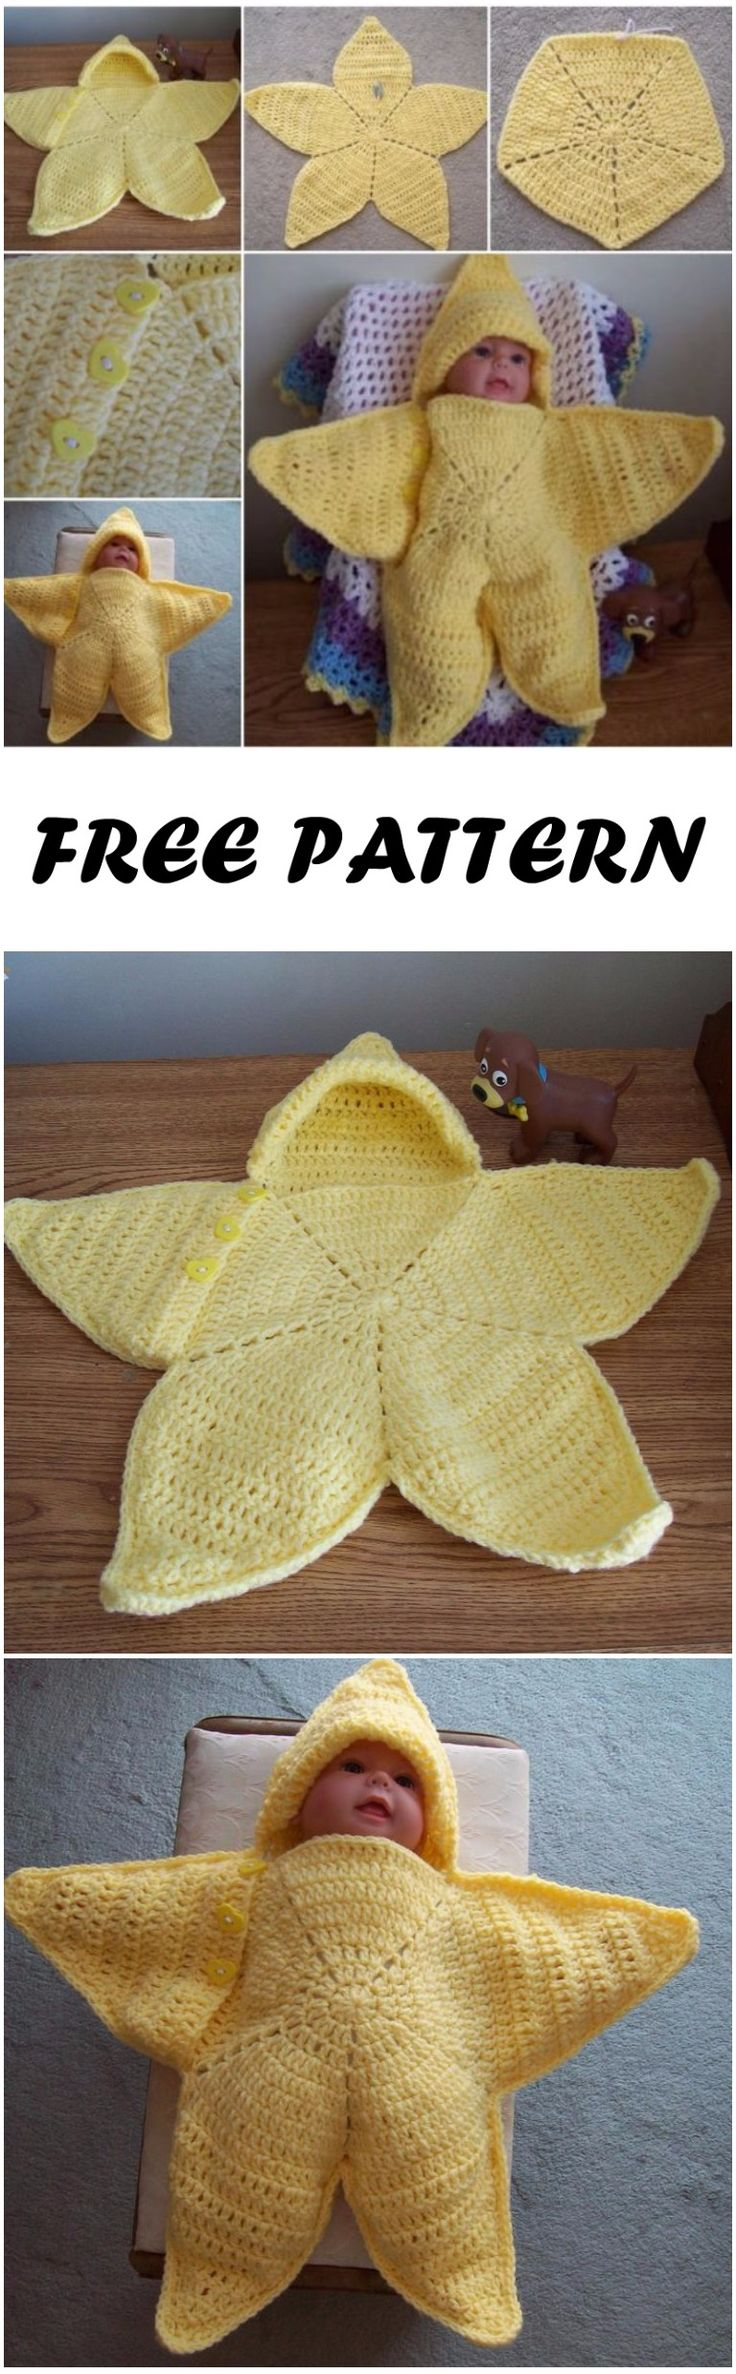 "Crochet Baby Bunting ""Twinkle Little Star"" Free Pattern"